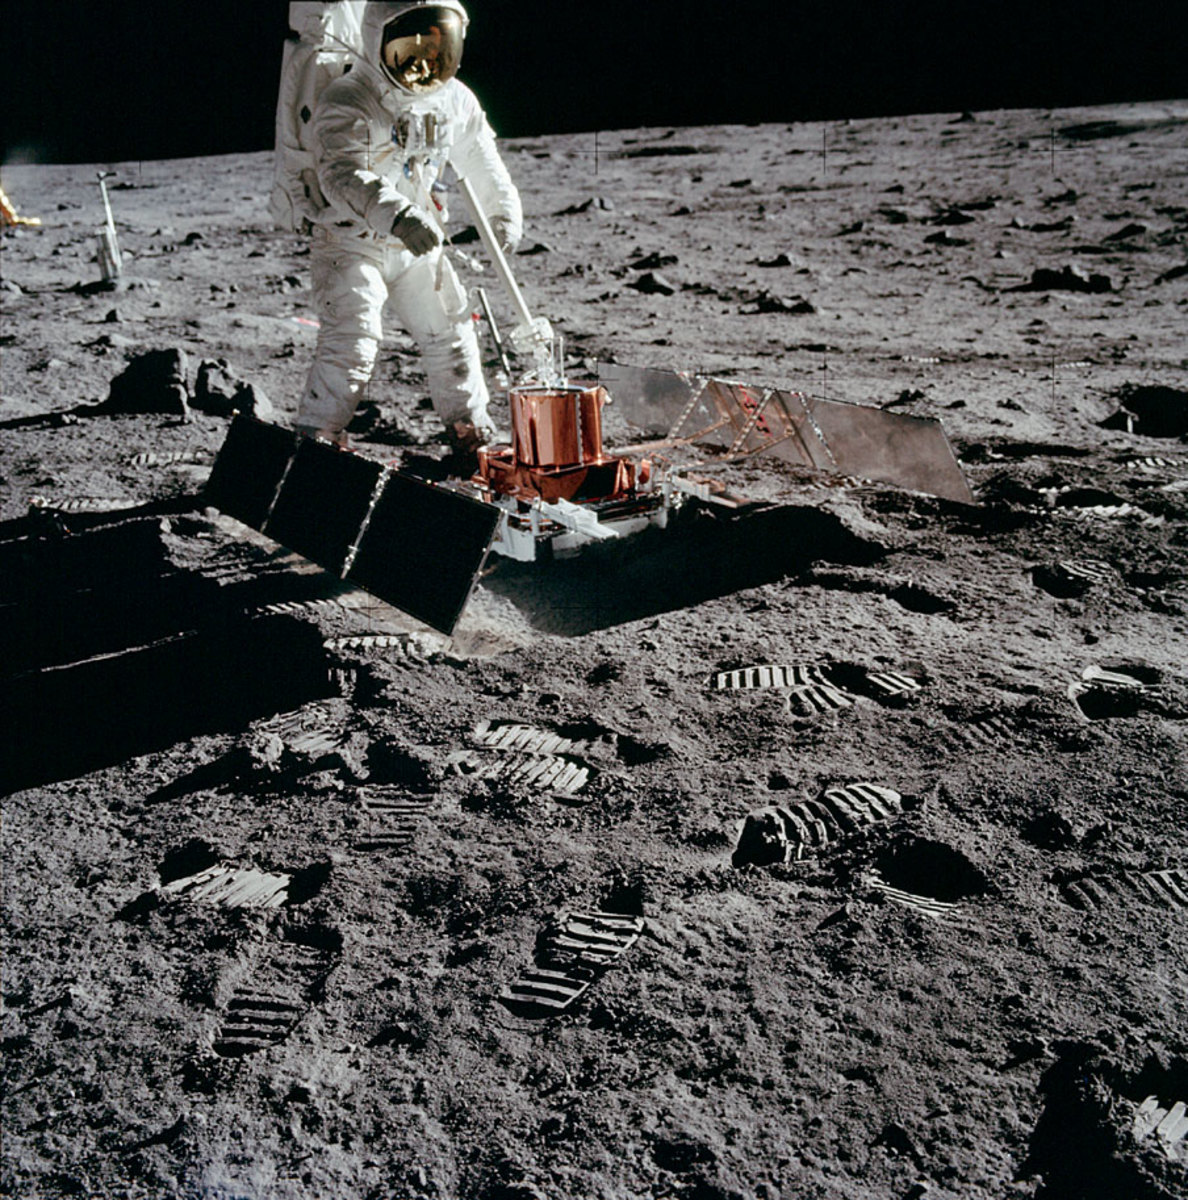 Buzz Aldrin locates a deployment site for the laser reflector and passive seismometer, then sets them up 14 and 19 meters, respectively, south of the Lunar Module.